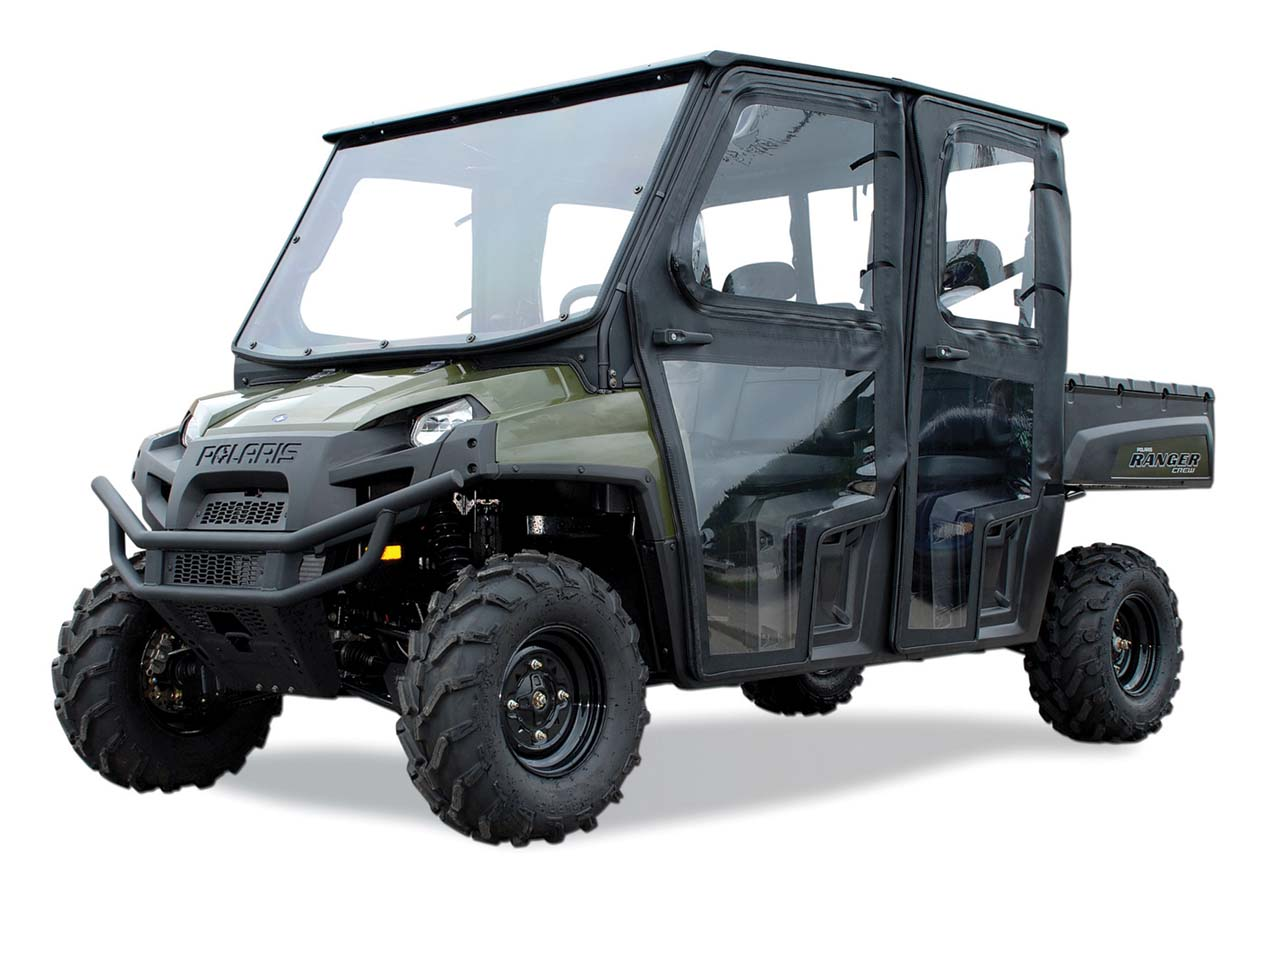 2011 curtis industries pathpro ss cab system for polaris ranger 800 crew atv illustrated. Black Bedroom Furniture Sets. Home Design Ideas